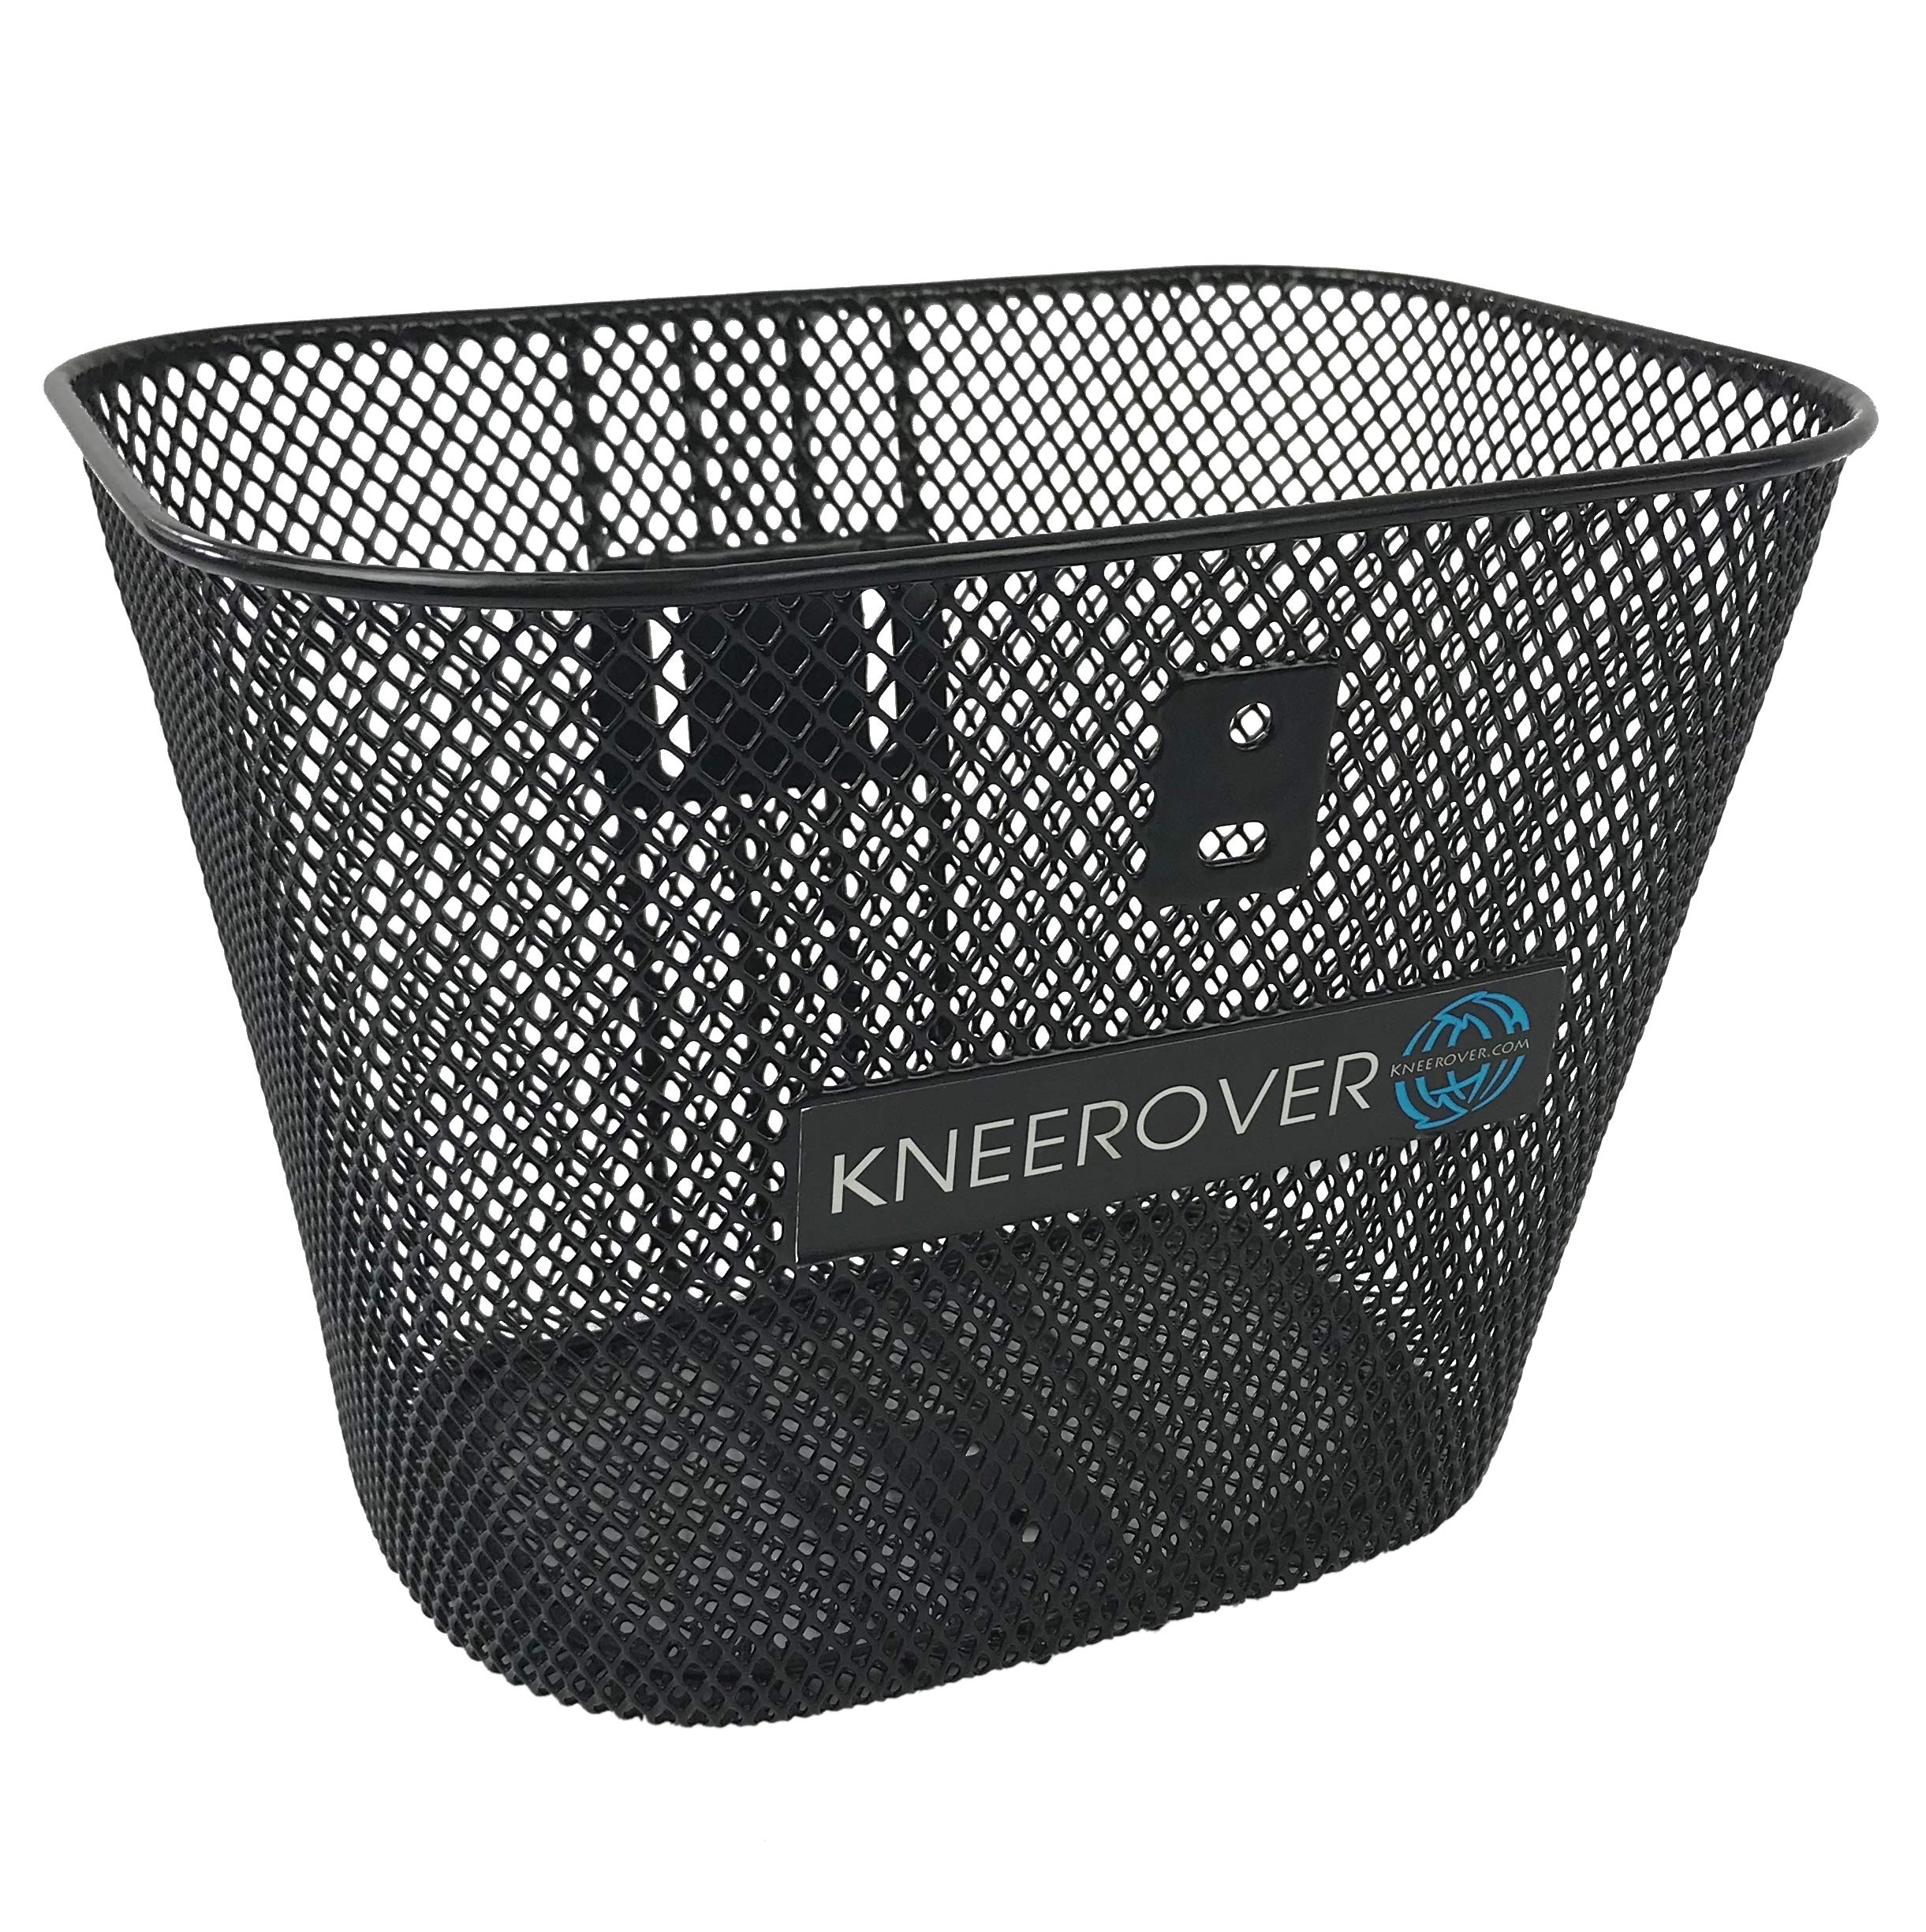 Knee Walker Basket Accessory - Replacement Part with Quick Release - INCLUDES ATTACHMENT BRACKET - Compatible with Most Knee Scooters by KneeRover